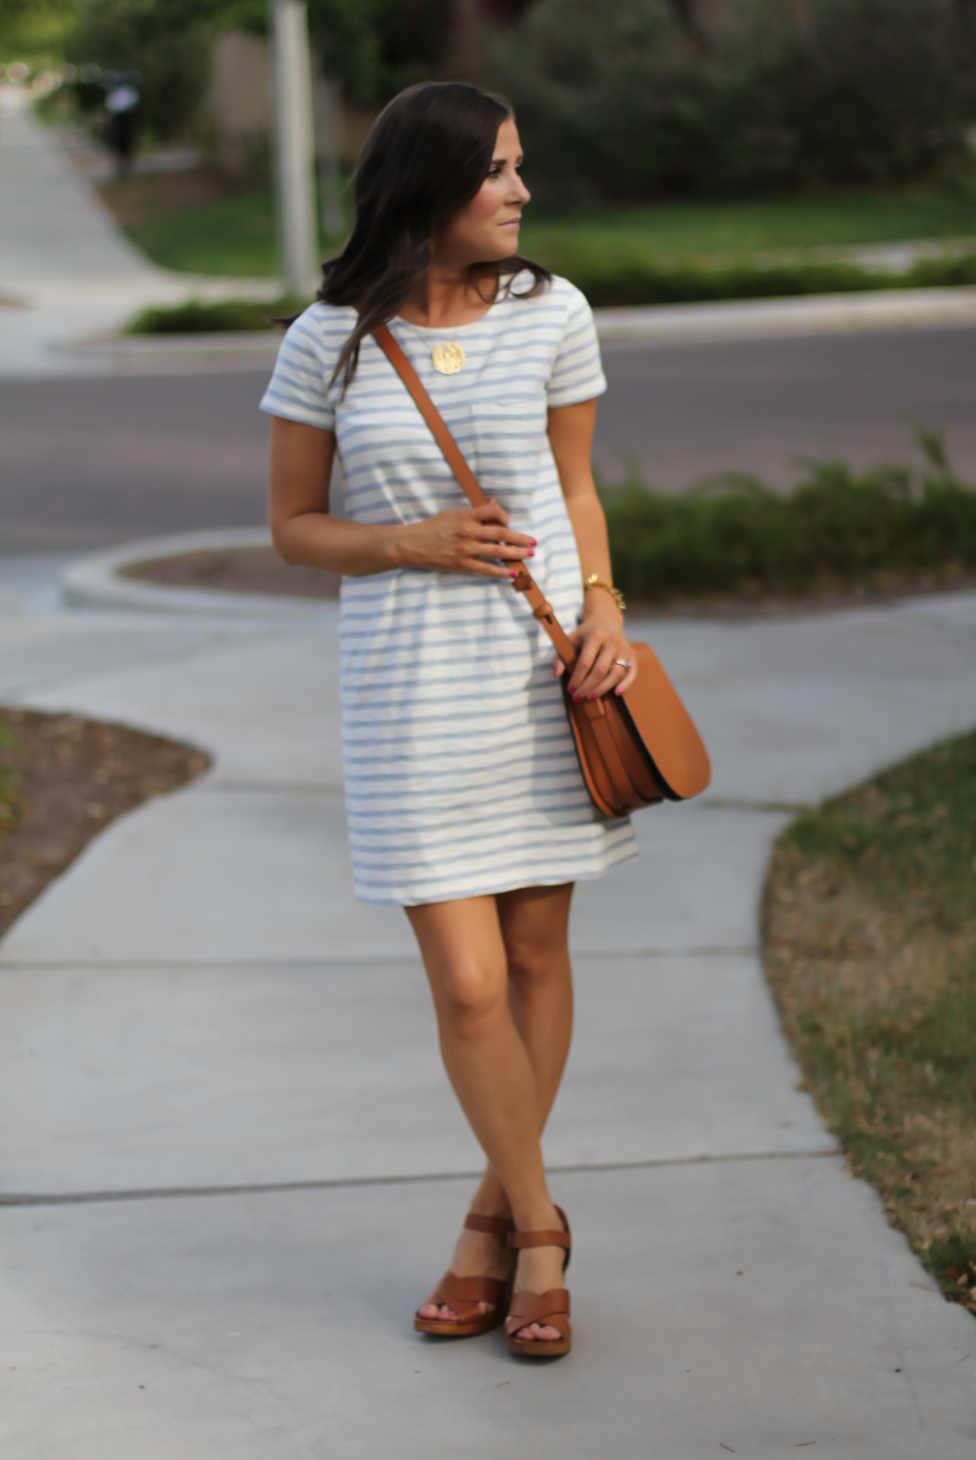 Grey Striped Button Back Short Sleeve Dress, Cognac Leather Wedge Sandals, Cognac Saddlebag, Madewell, Tory Burch 6